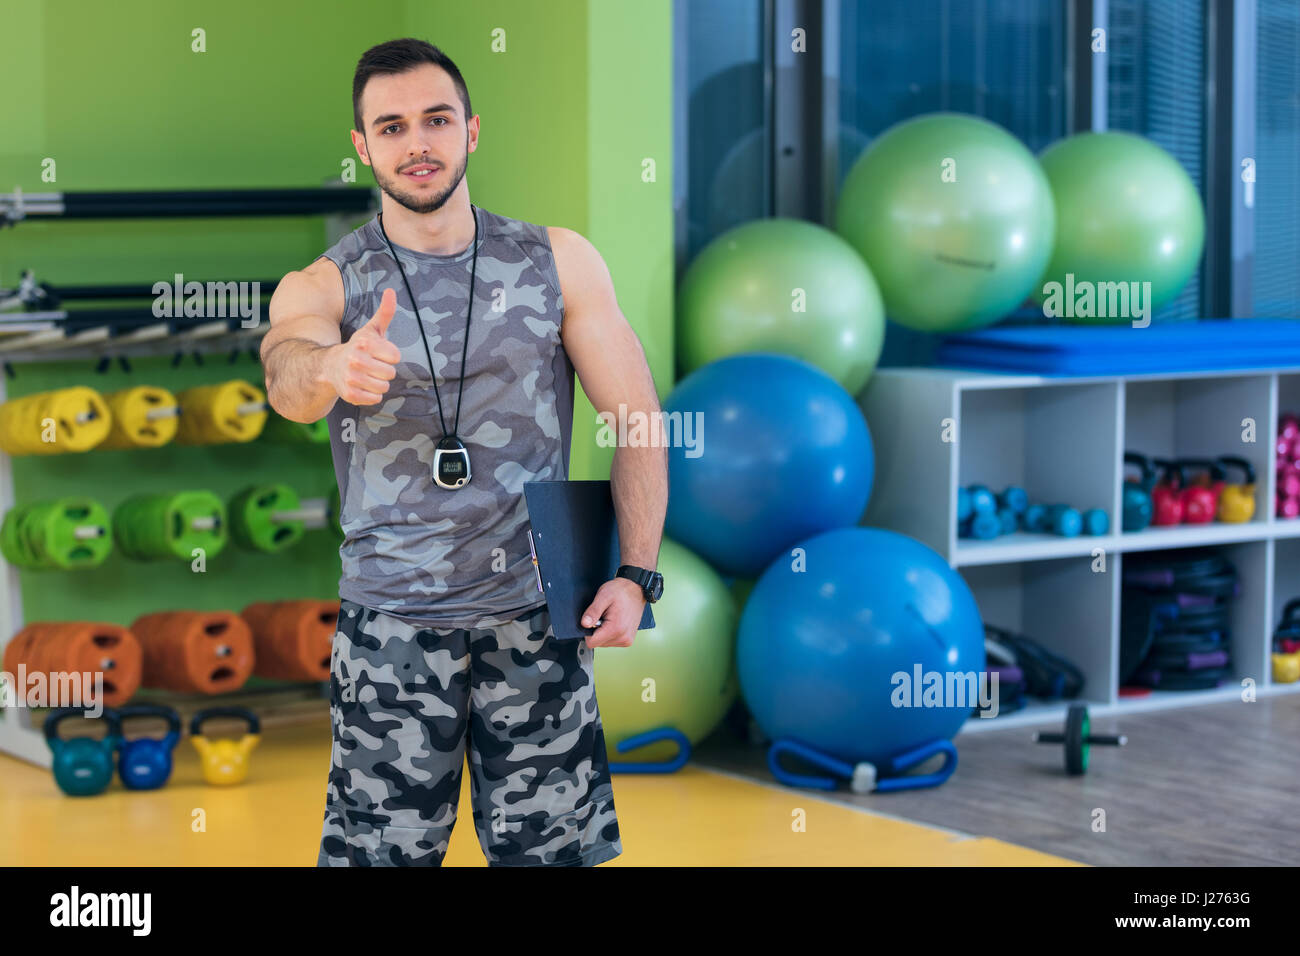 Portrait of a muscular trainer showing thumbs up. - Stock Image